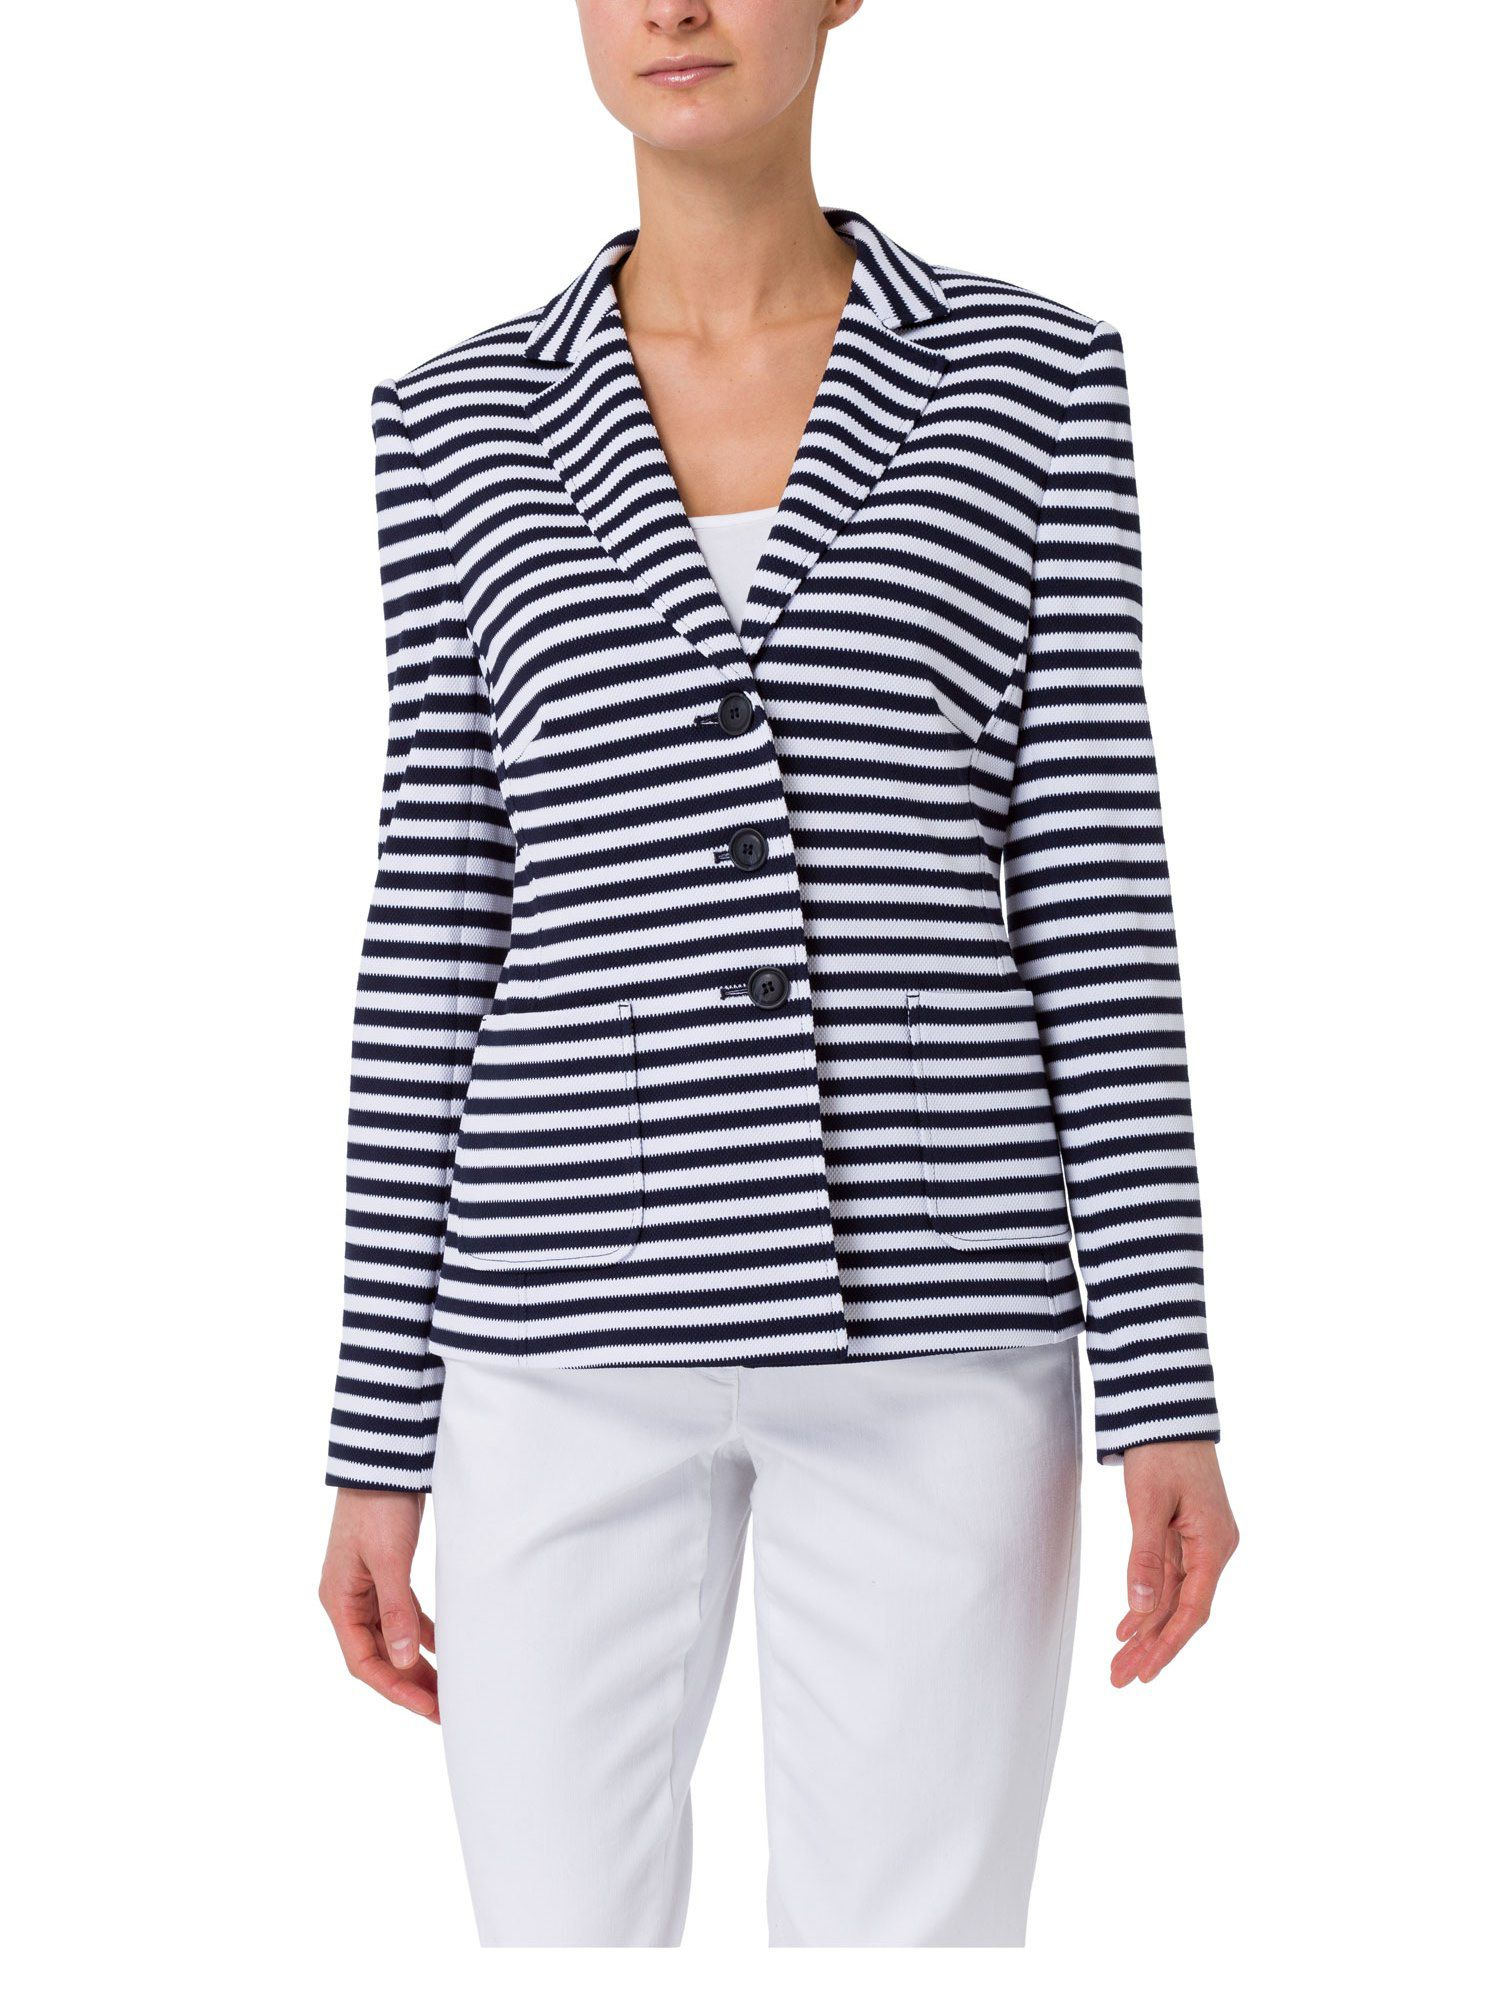 Shop womens blazers cheap sale online, you can buy white blazers, black blazers, velvet blazers and navy blue blazer jackets for women at wholesale prices on. Shop the latest collection of blue and white striped blazer for women from the most popular.